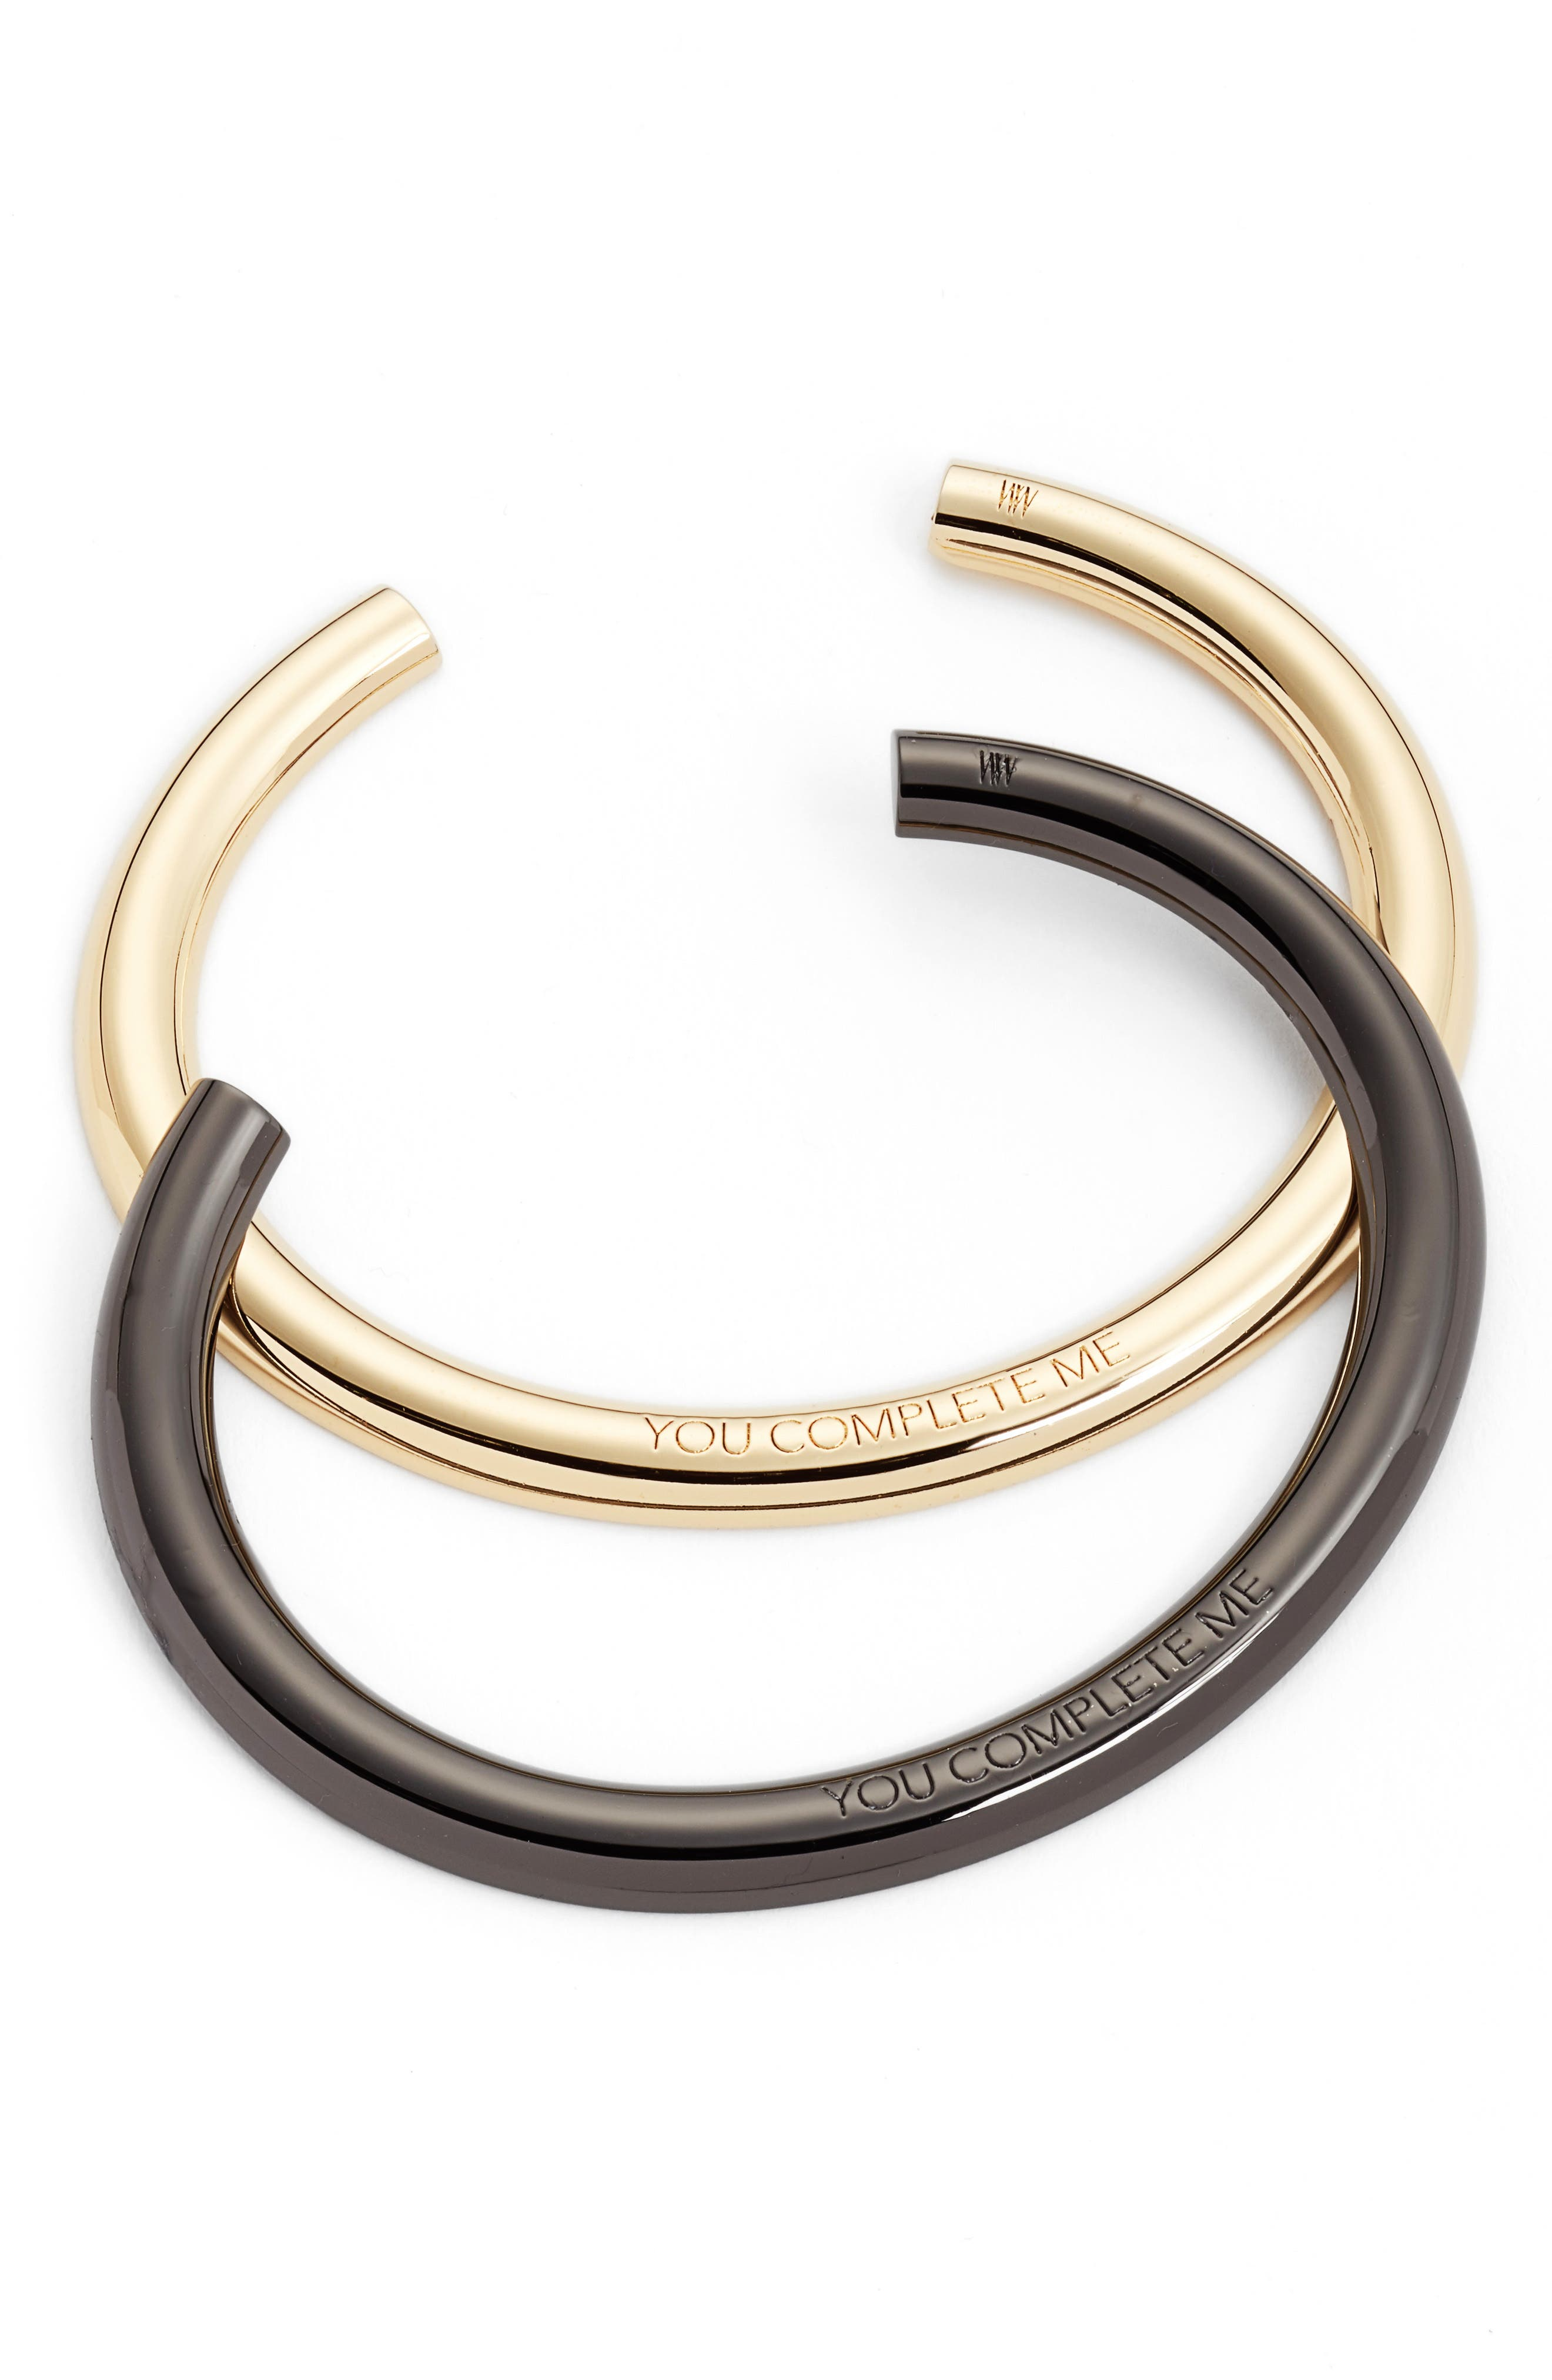 Alternate Image 1 Selected - Stella Valle You Complete Me Set of 2 Cuffs